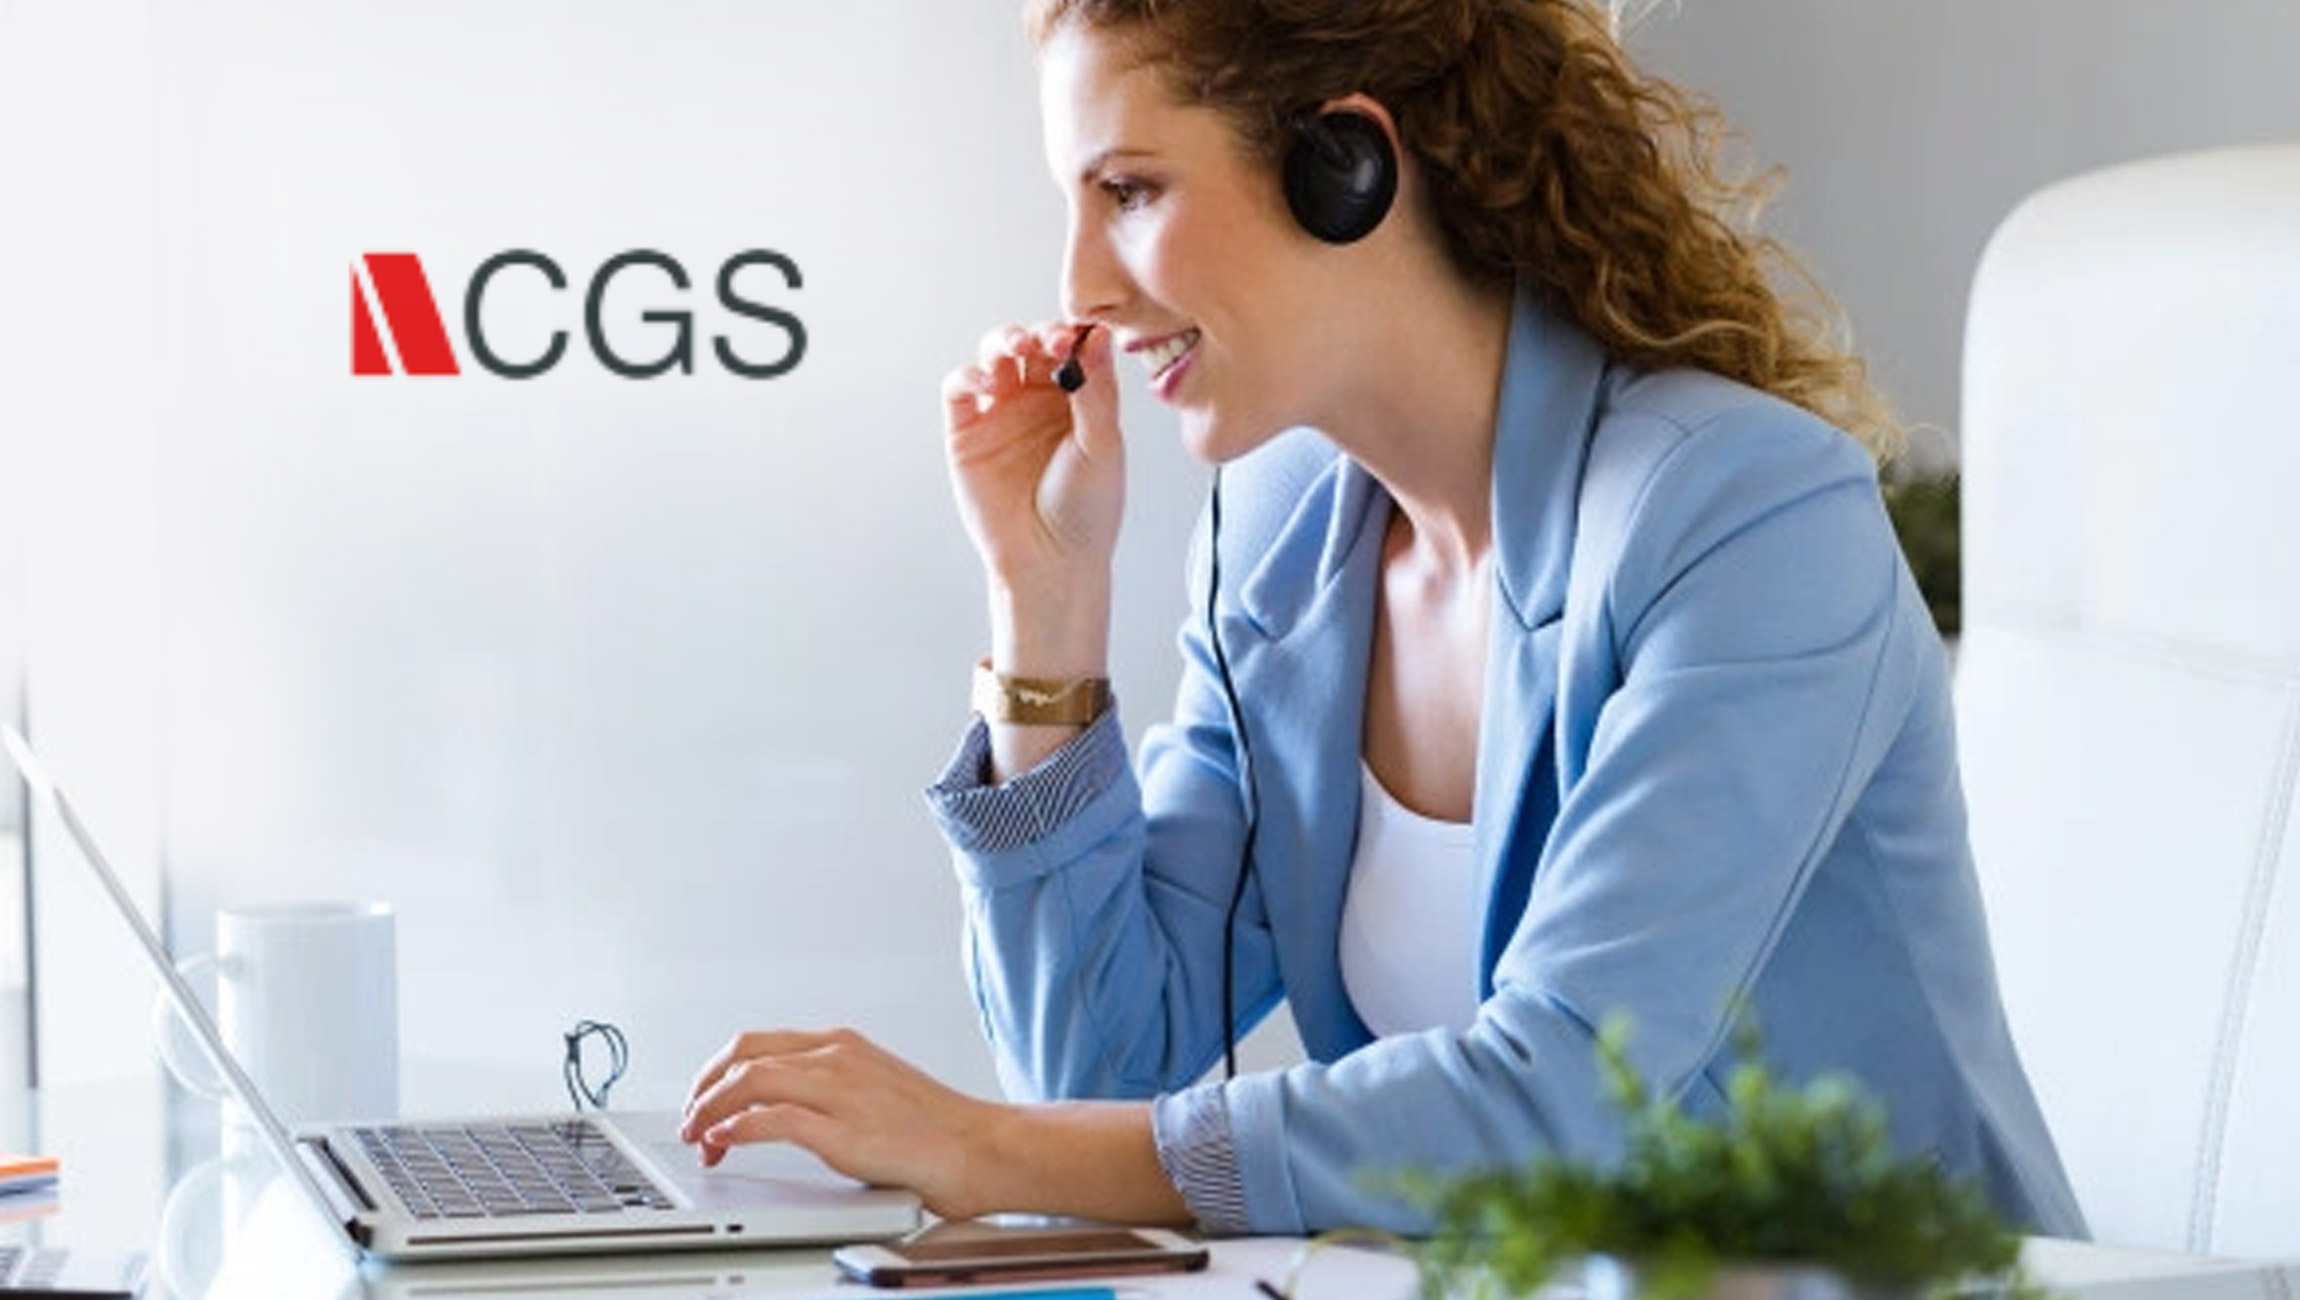 CGS Survey Reveals Consumer Interest in Emerging Tech for Customer Service Guidance